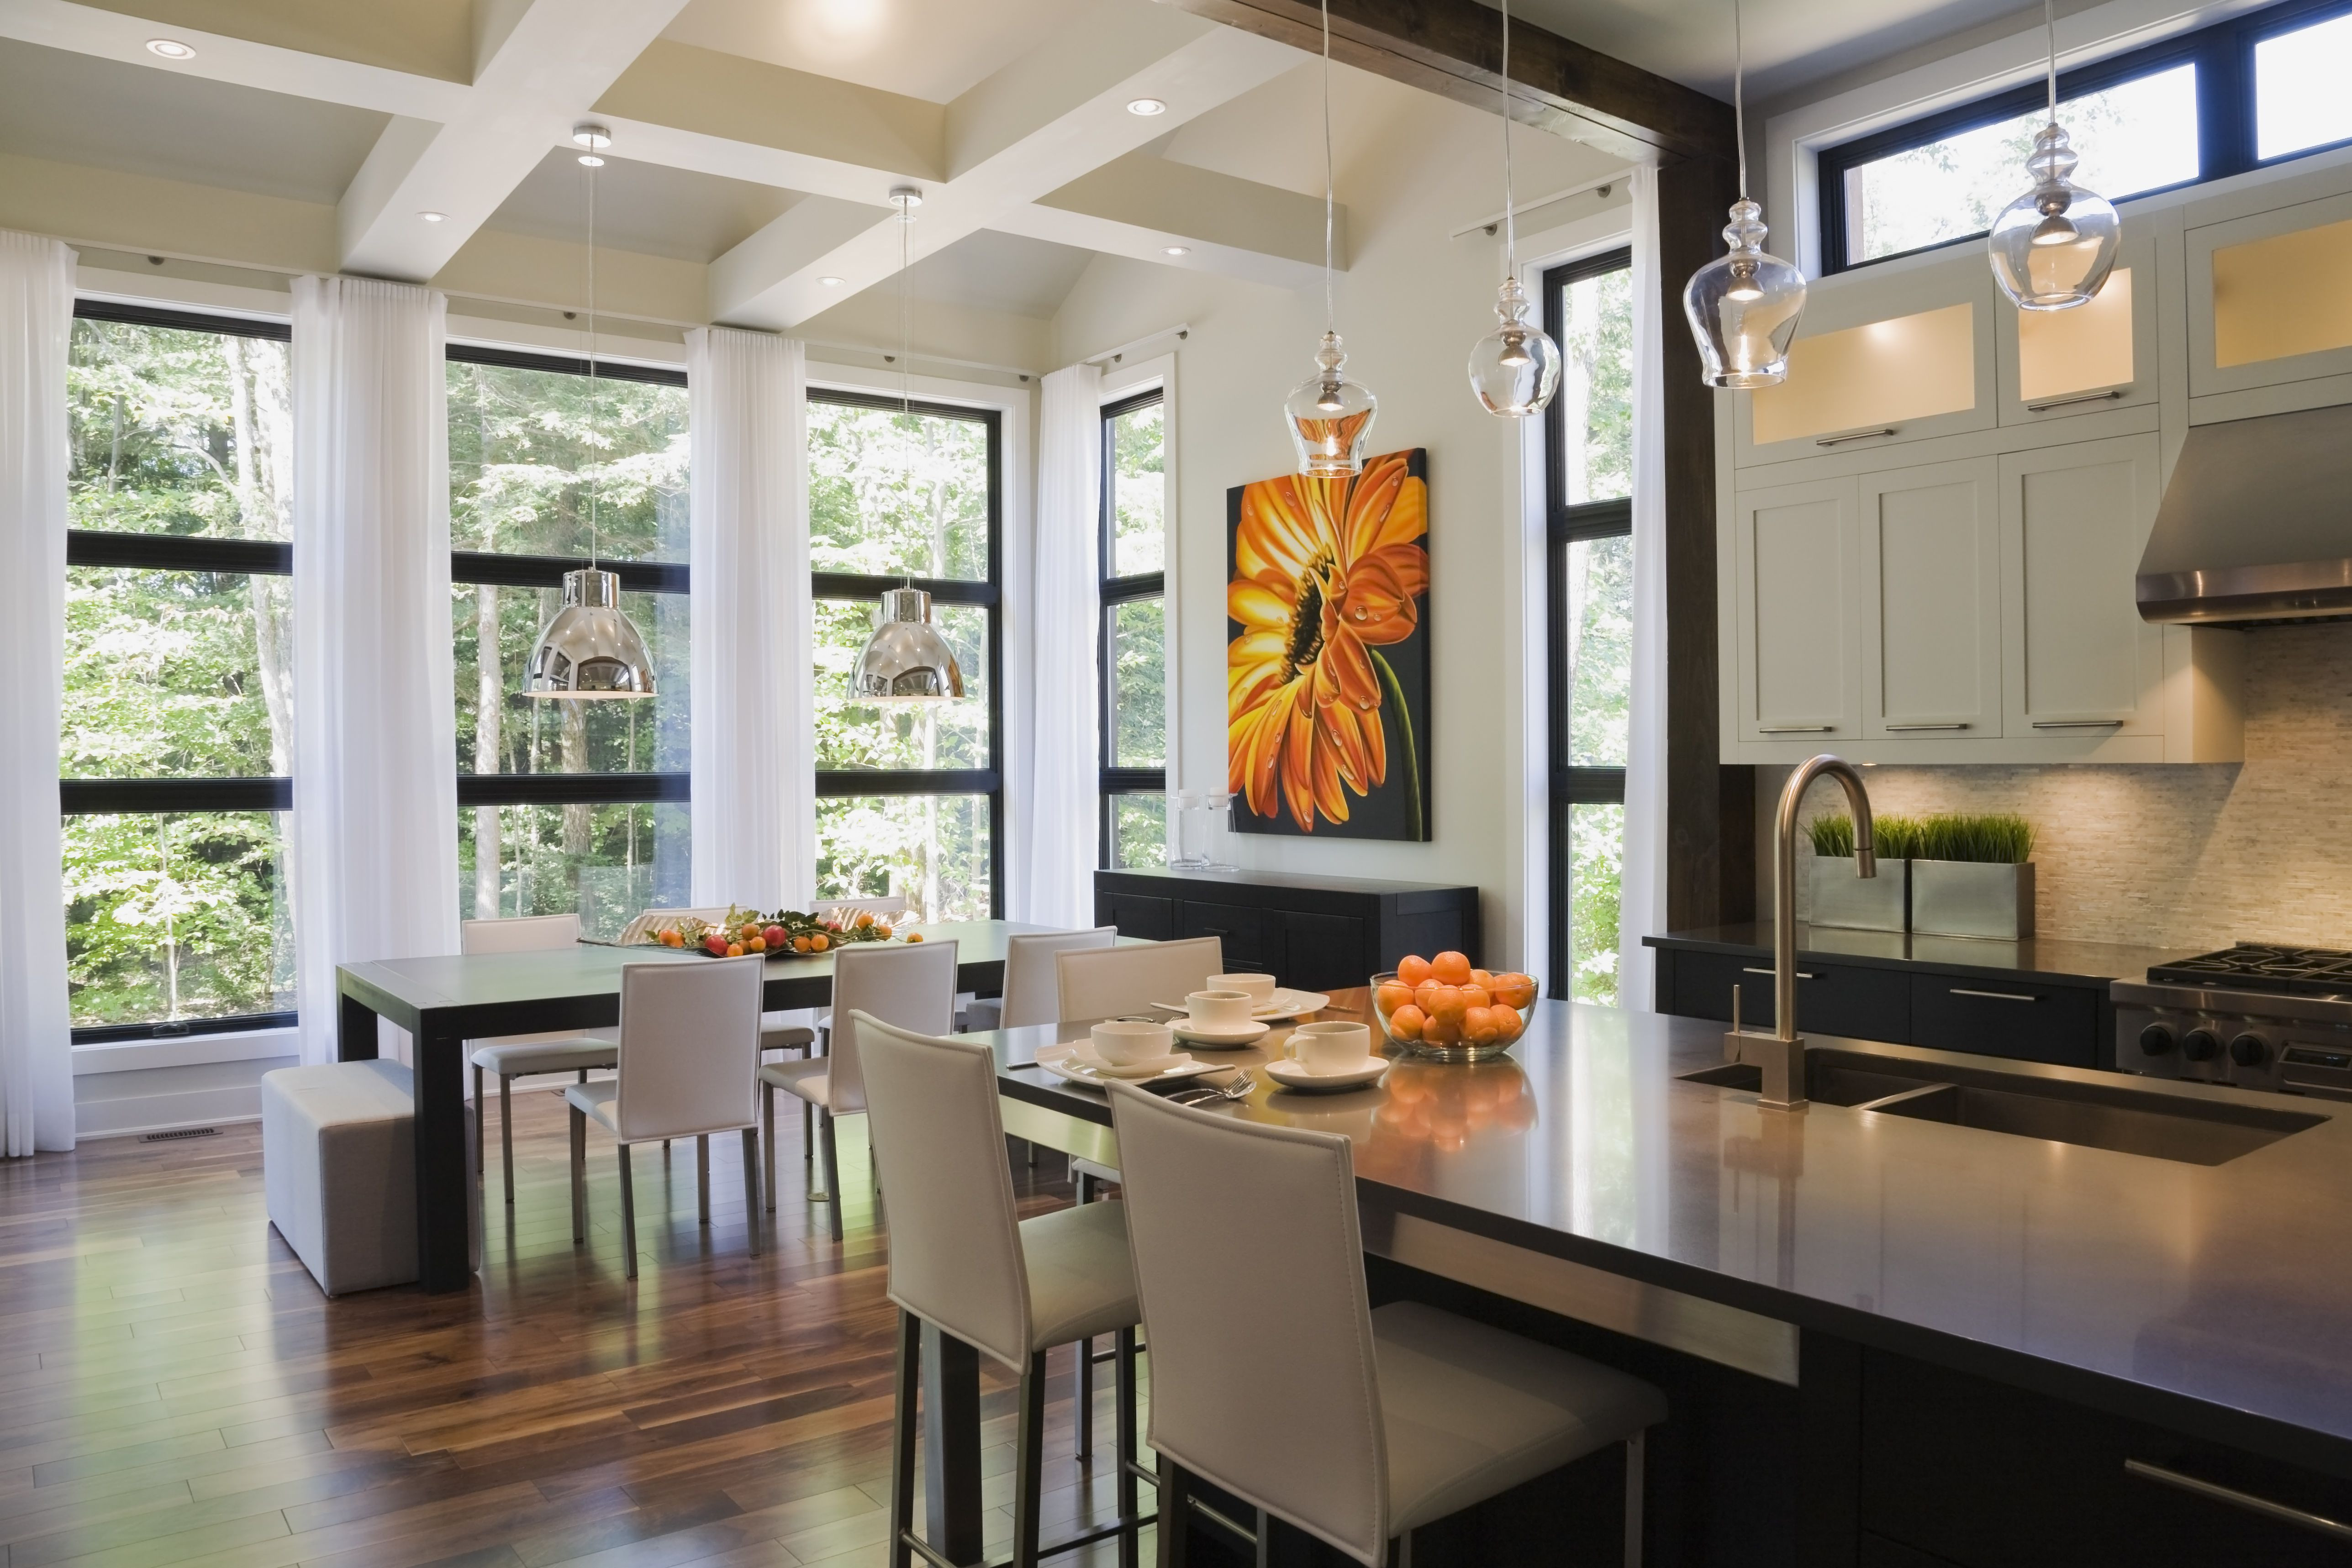 hardwood floor refinishing okc of what you need to know about hardwood floors in kitchens inside kitchen and dining room inside an upscale residential home quebec canada 519512485 5990dc4622fa3a0010356721